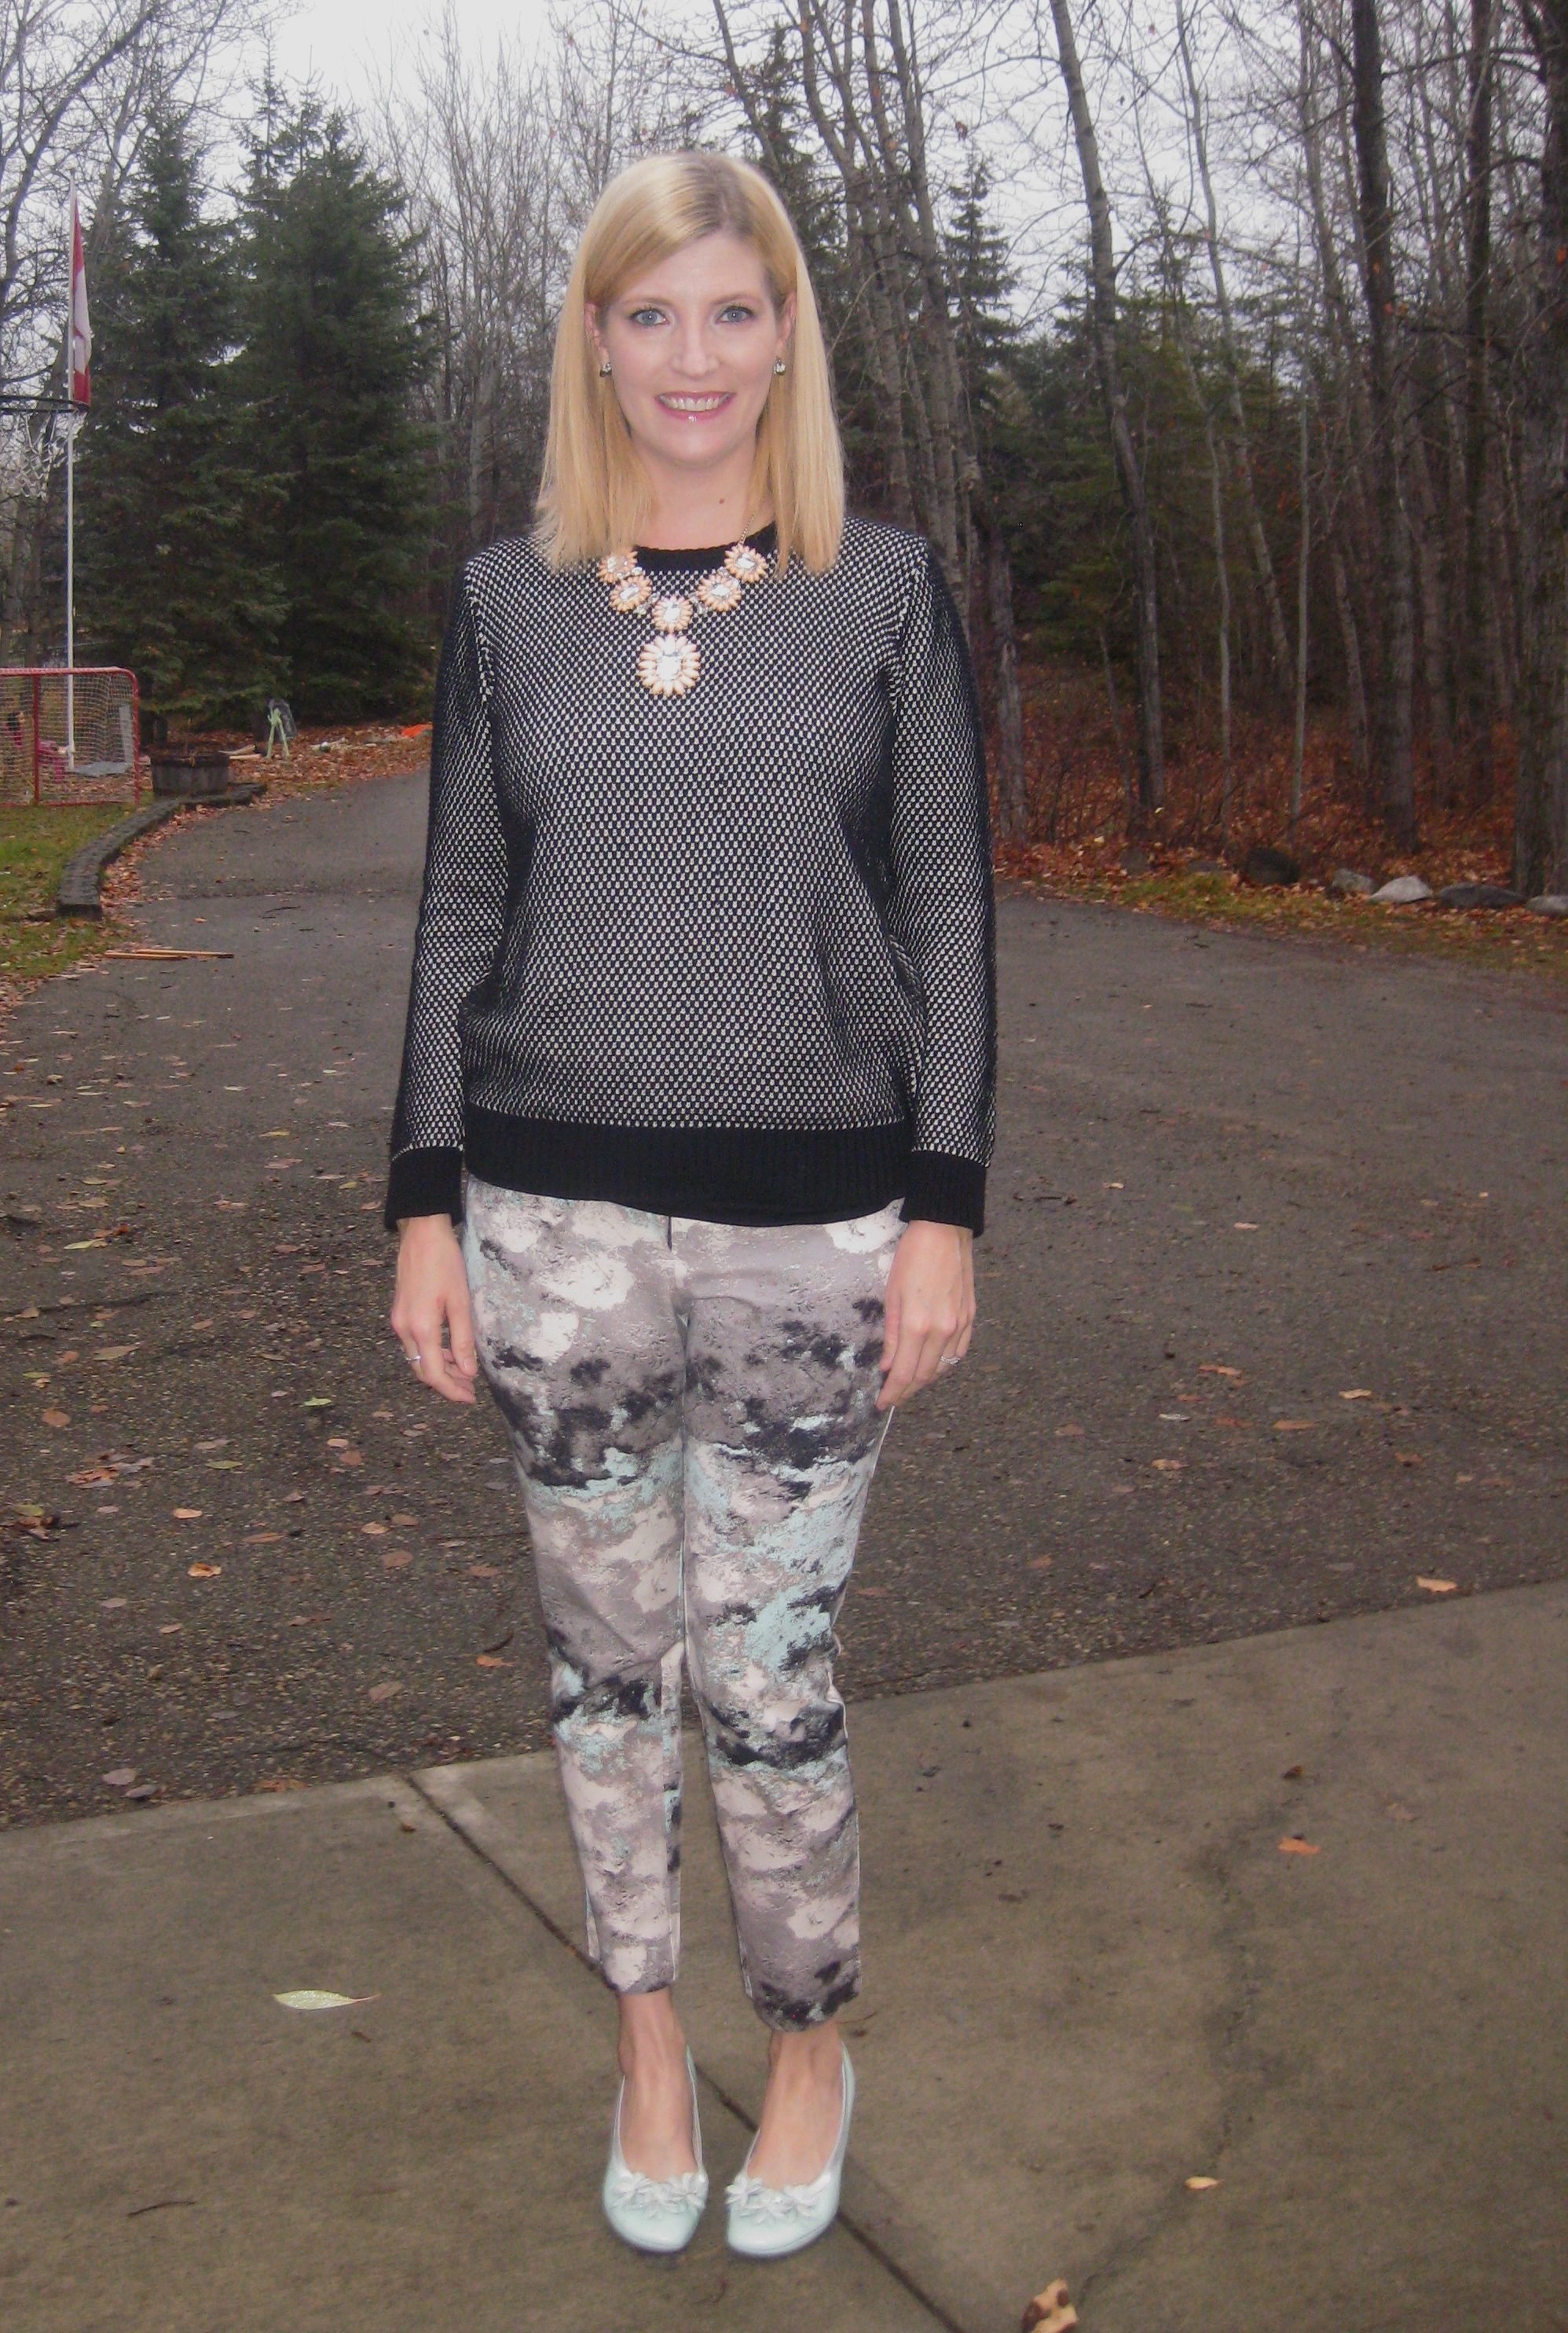 French Connection sweater $7, statement necklace $17.50,  Mossimo pants $7, Hispanitas shoes $15